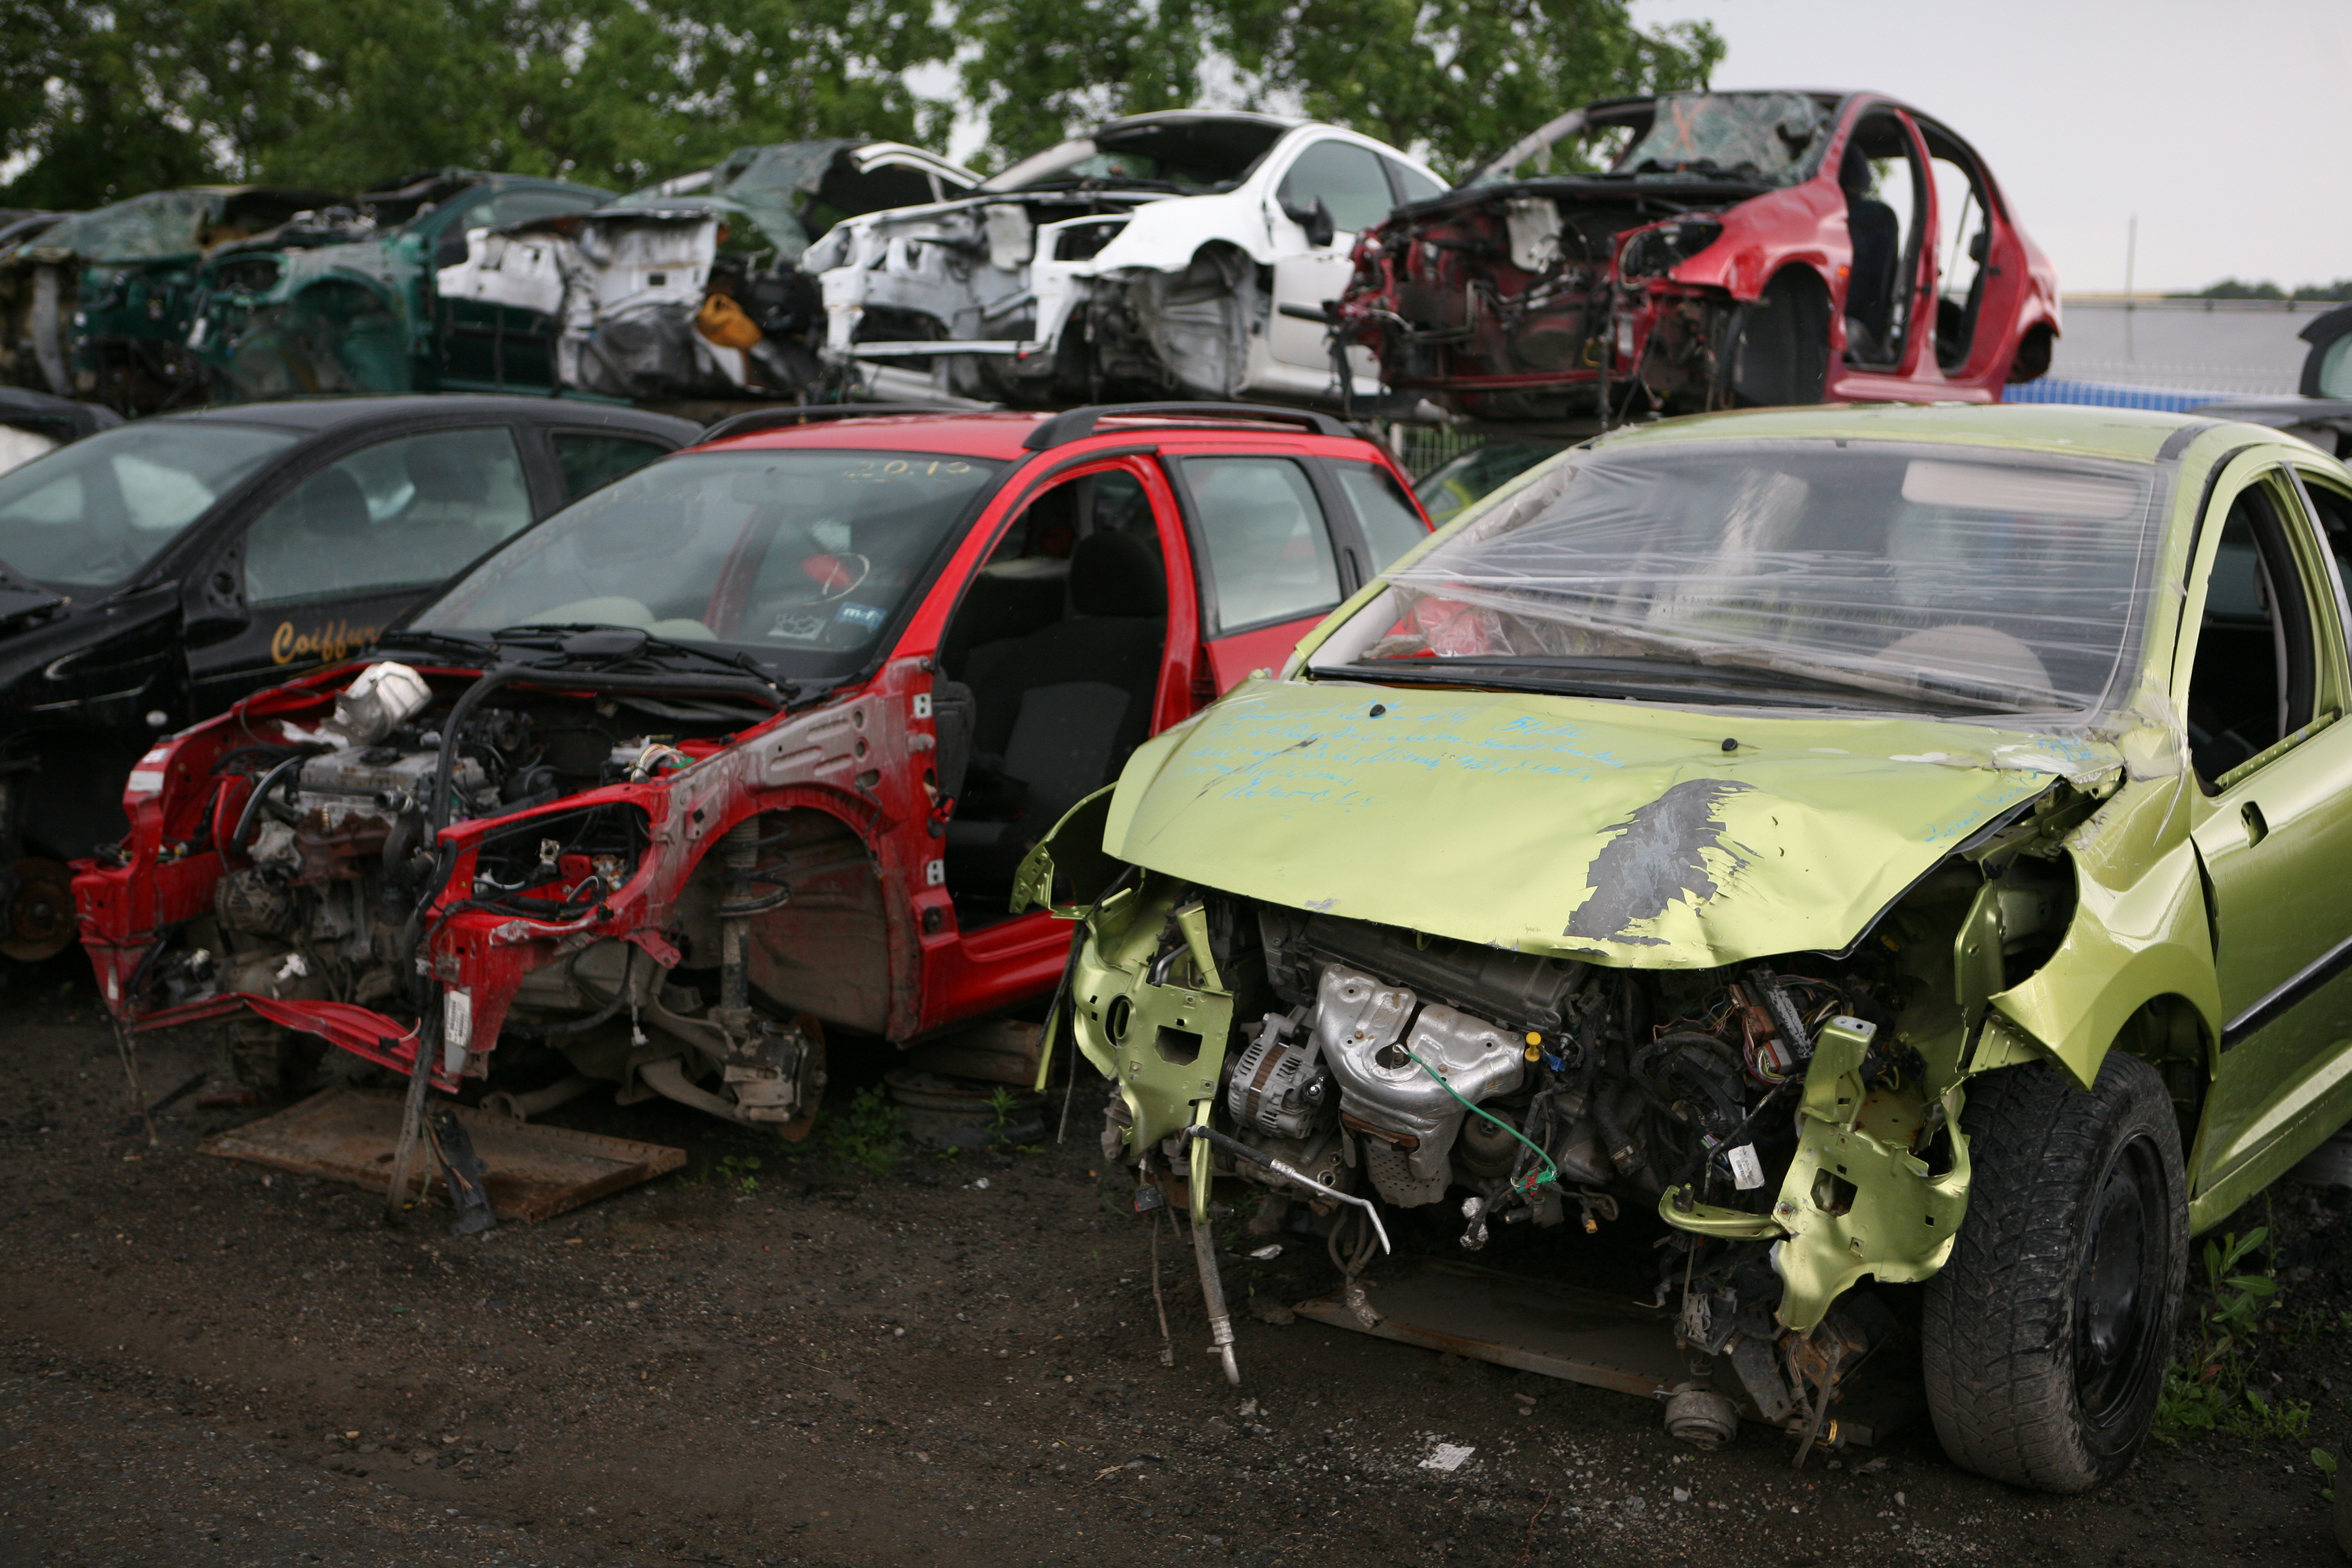 Norfolk Car Scrapping – Take My Scrap Car - Take My Scrap Car ...